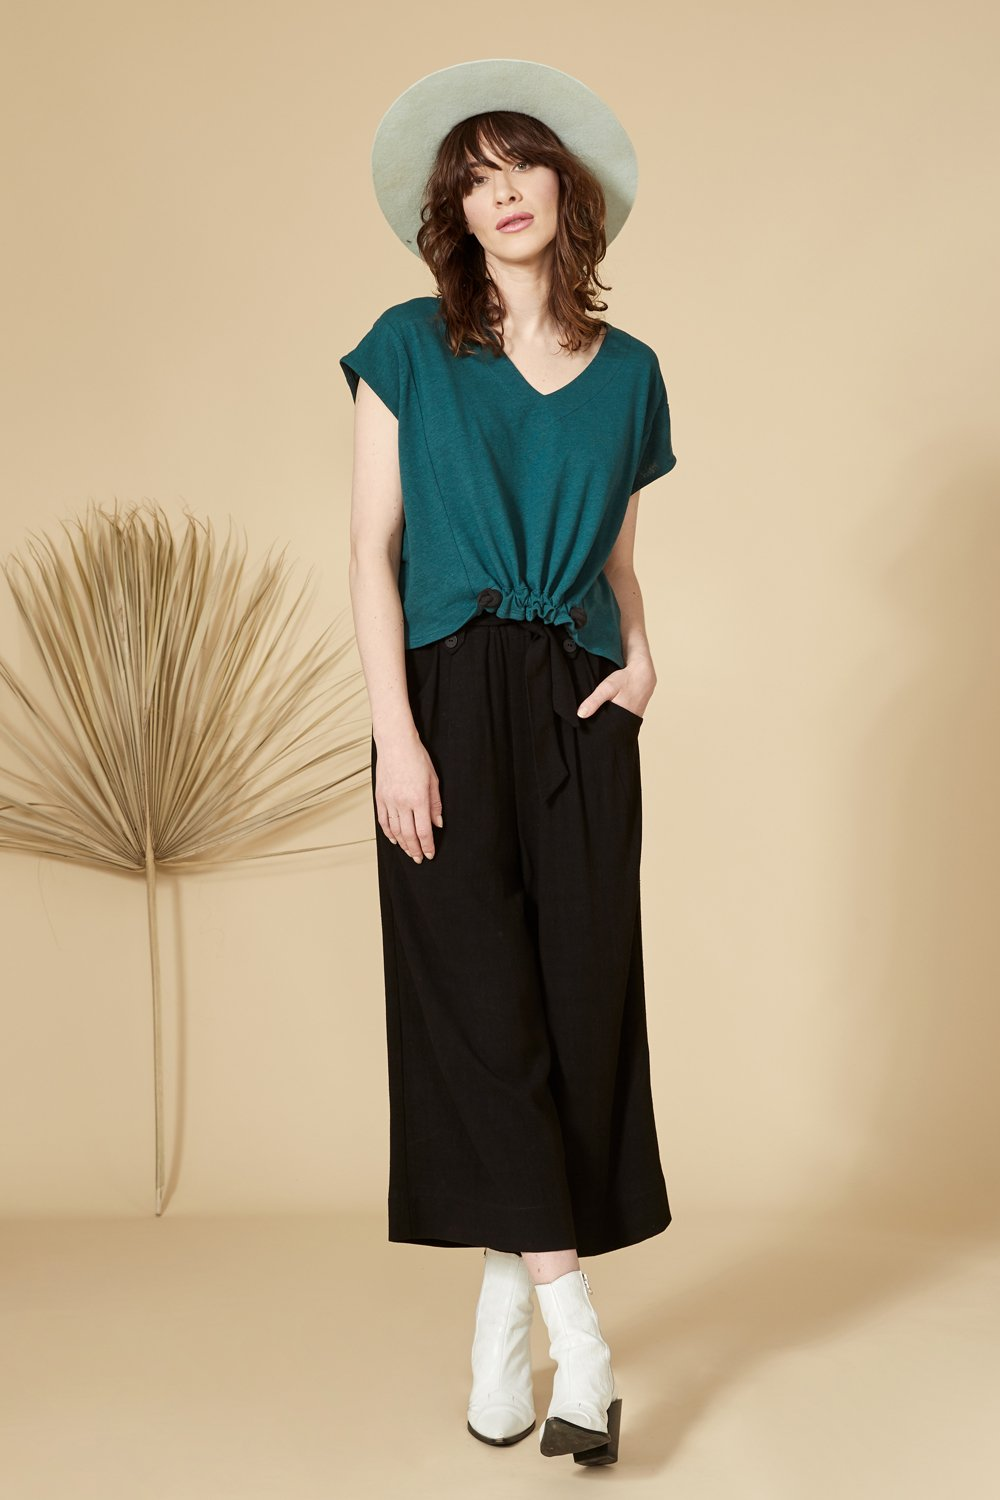 Black 7/8 pants, with a high waist, side pockets, fabric belt at the waist, and wide leg.70% viscose, 30% linen. Hand wash in cold water, air dry flat. Designed and Made in Montréal.